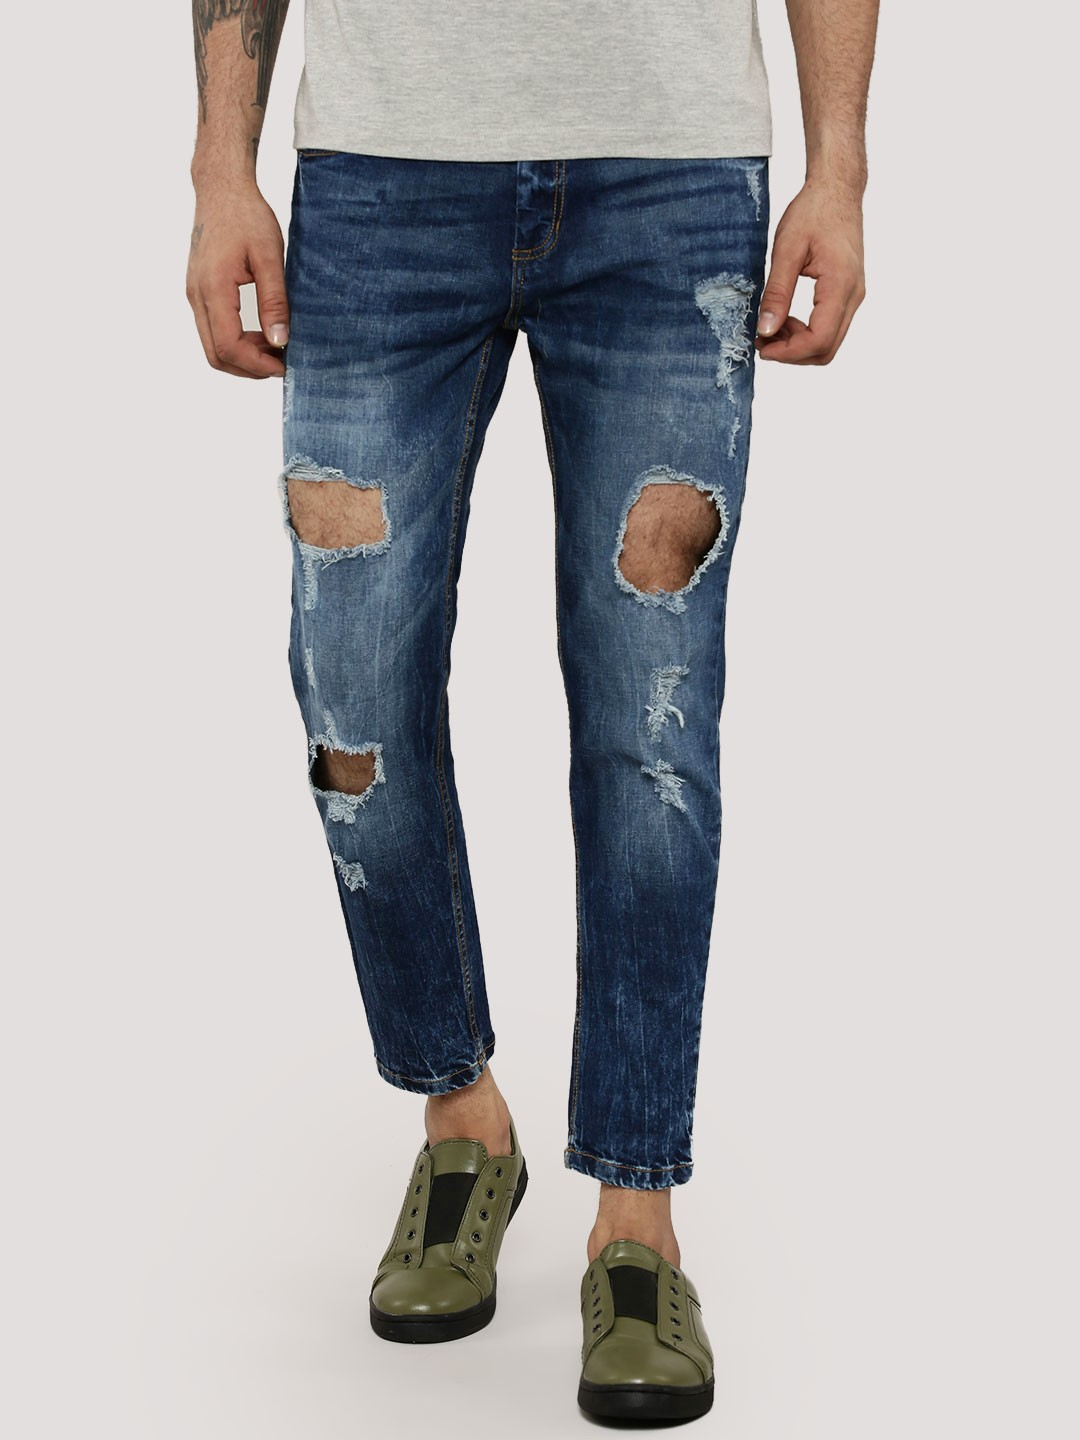 ADAMO LONDON Extreme Ripped Jeans In Slim Fit - Buy ADAMO LONDON Extreme Ripped Jeans In Slim Fit For Men - Men's